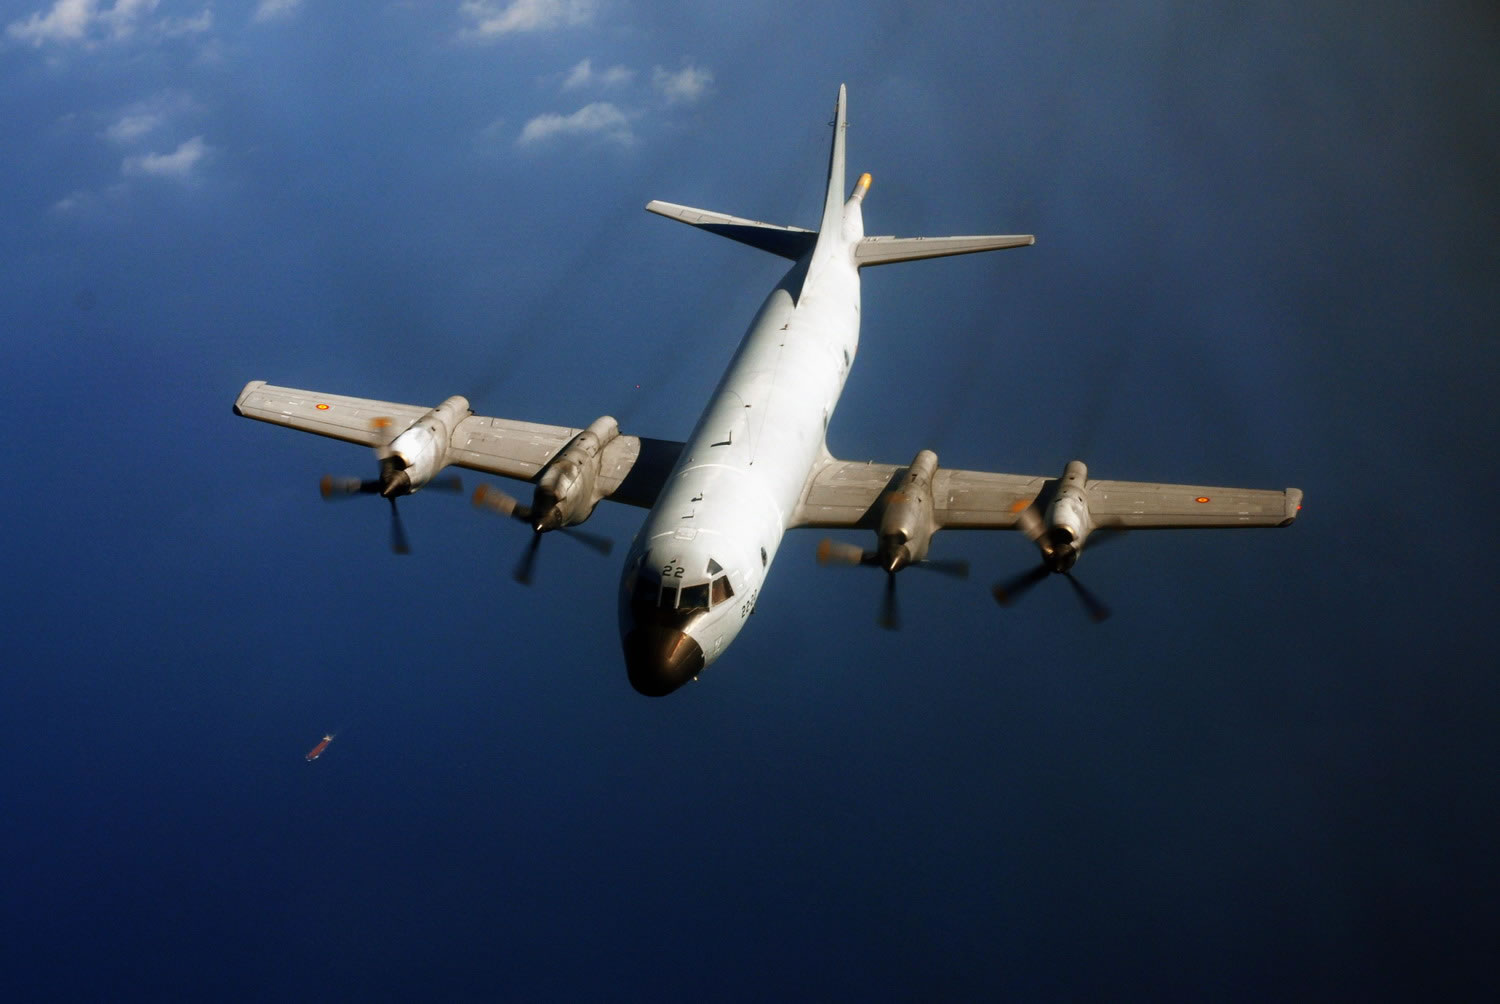 http://www.aircraftinformation.info/Images/P-3_Orion_09.jpg